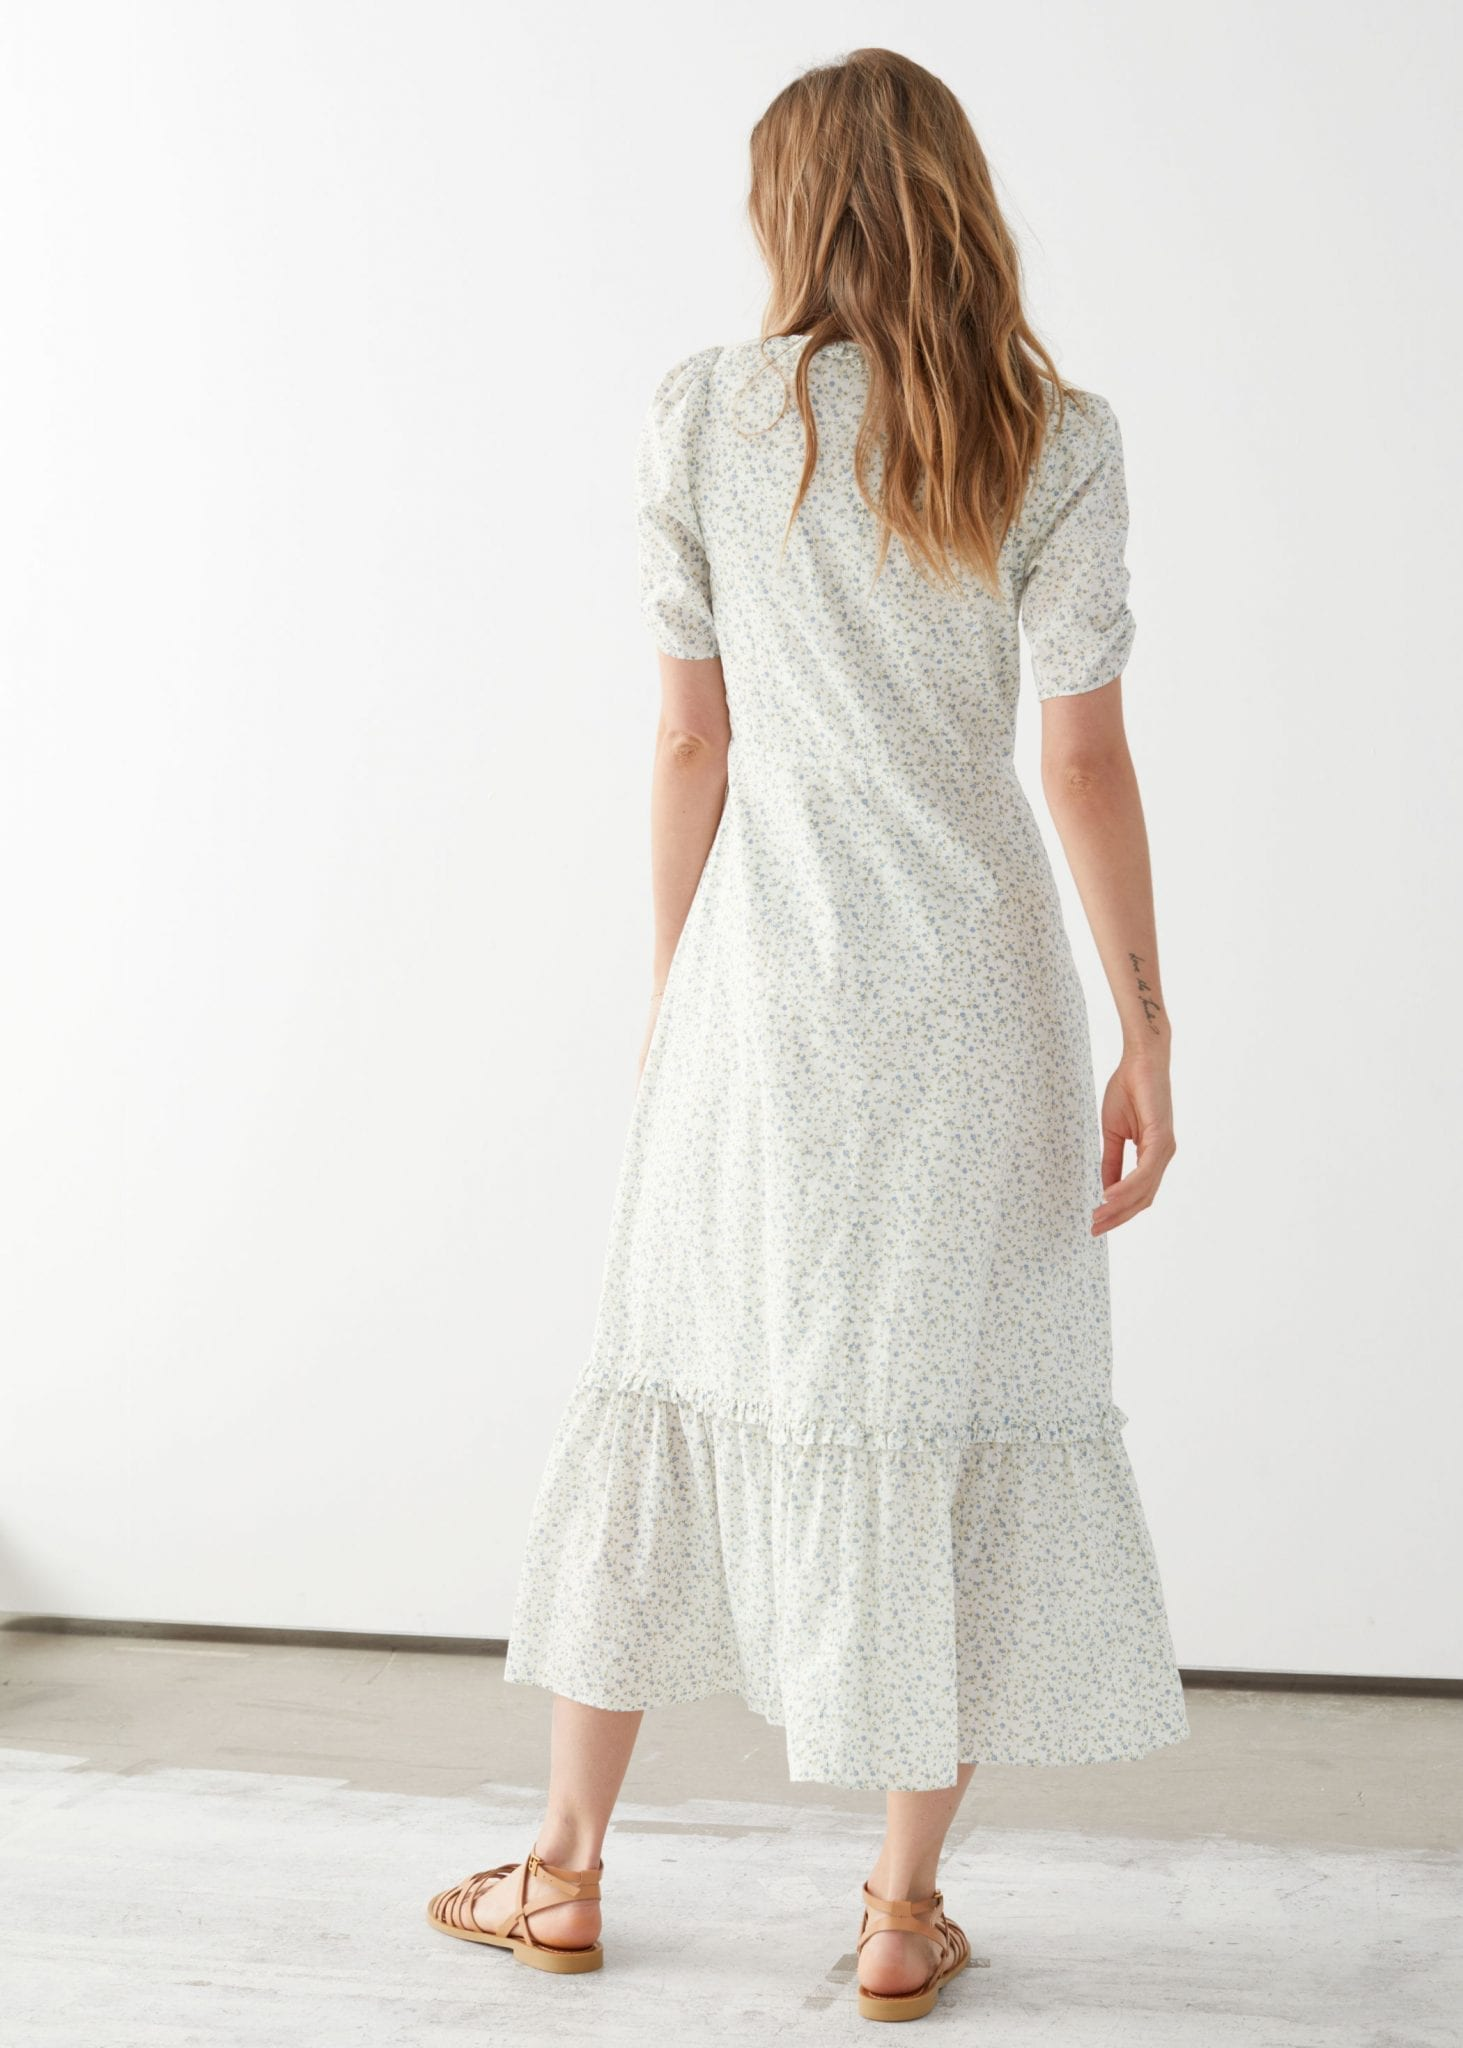 OTHER STORIES Puff Sleeve Scoop Neck Midi Dress